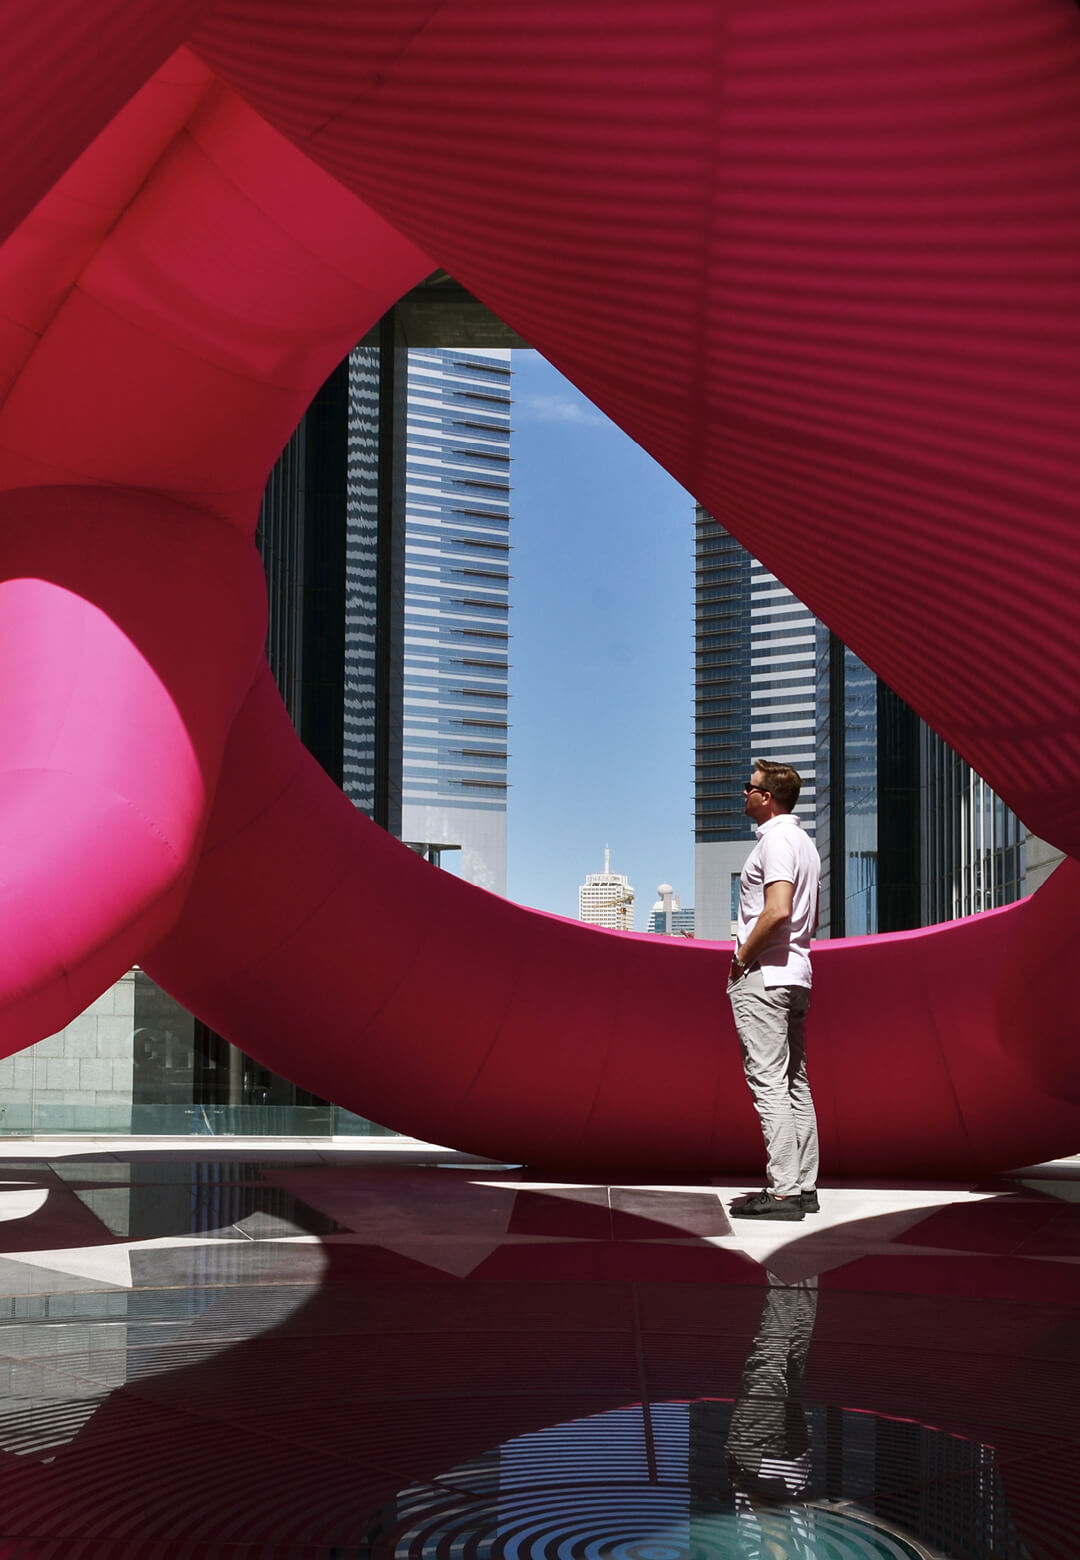 'Flamingo Ring' at Dubai International Financial Centre is an example of the way Cyril Lancelin uses popular imagery in his art   Flamingo Ring by Cyril Lancelin   STIRworld